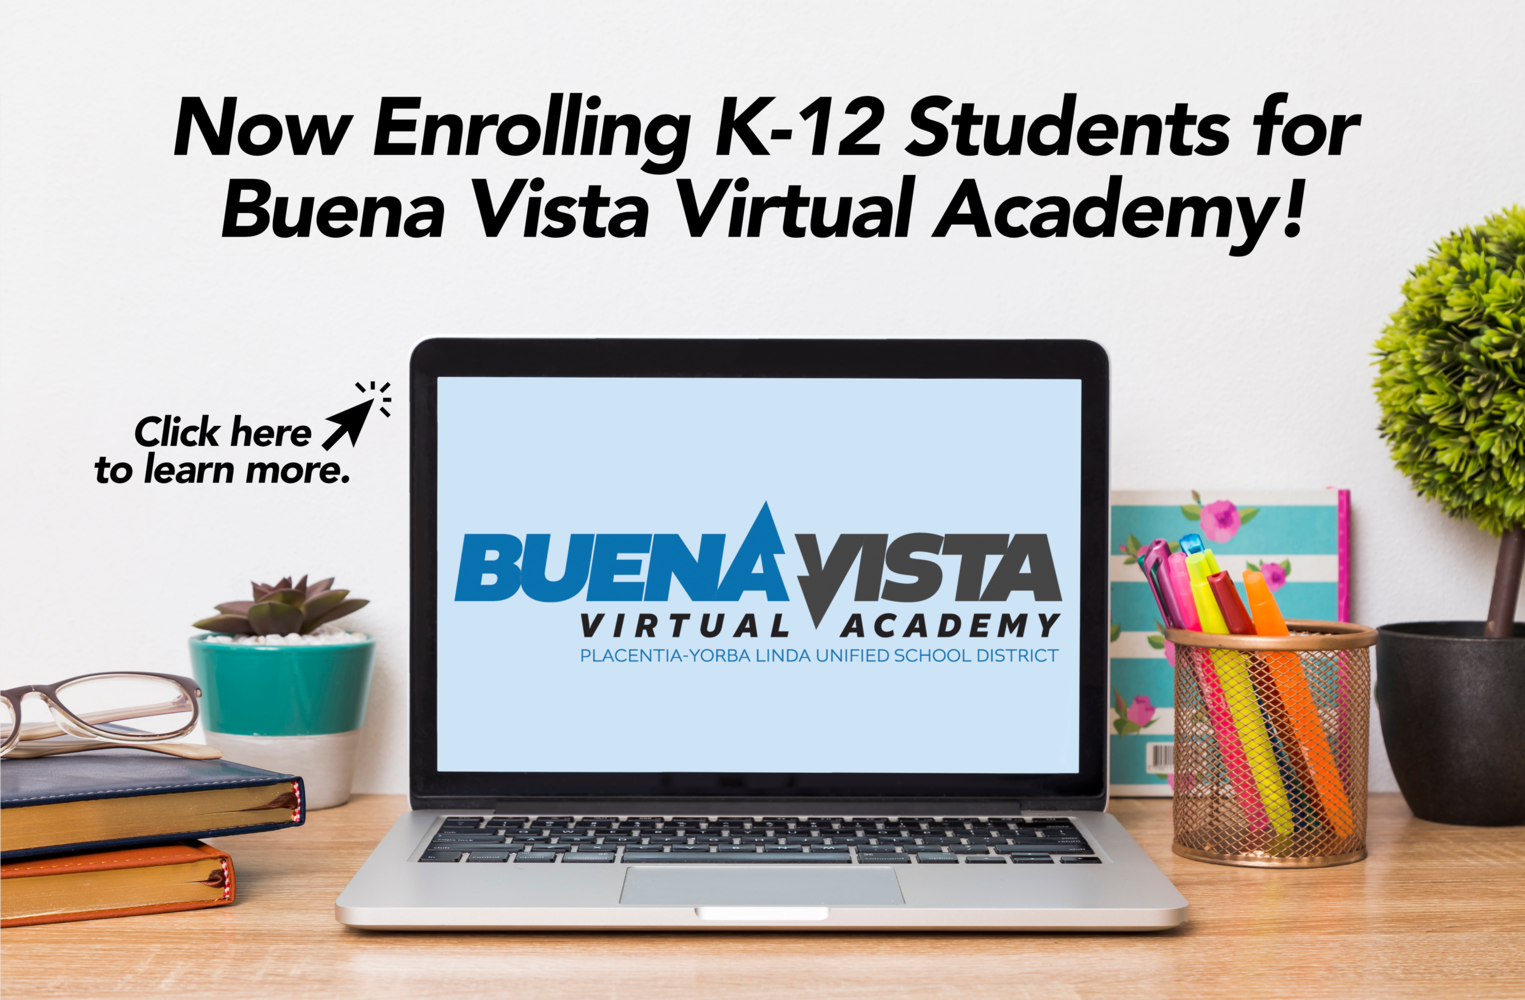 Buena Vista Virtual Academy.